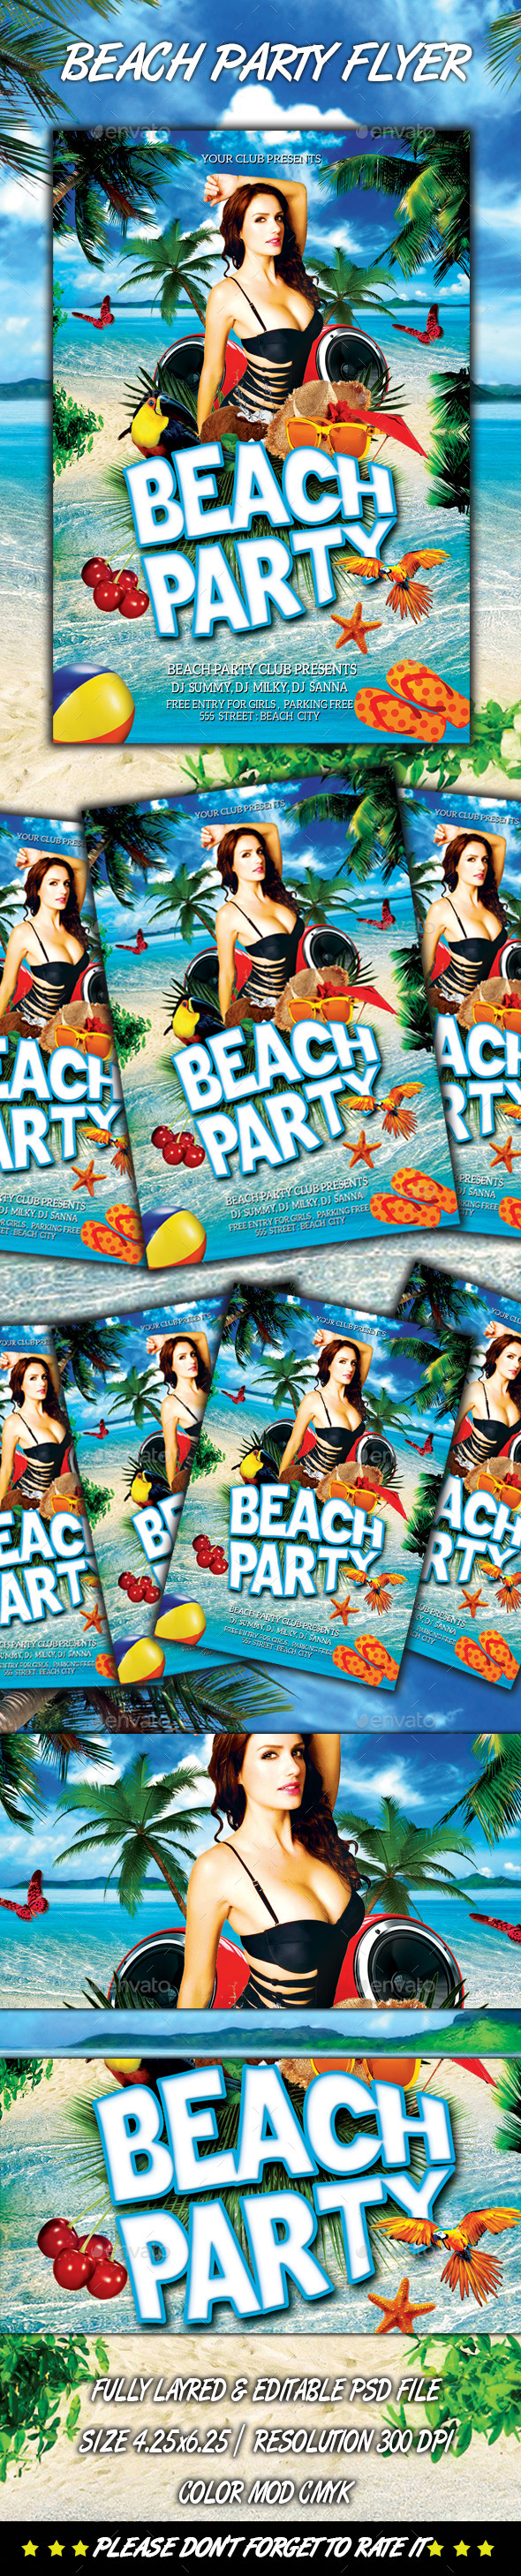 GraphicRiver Beach Party Flyer 8859582